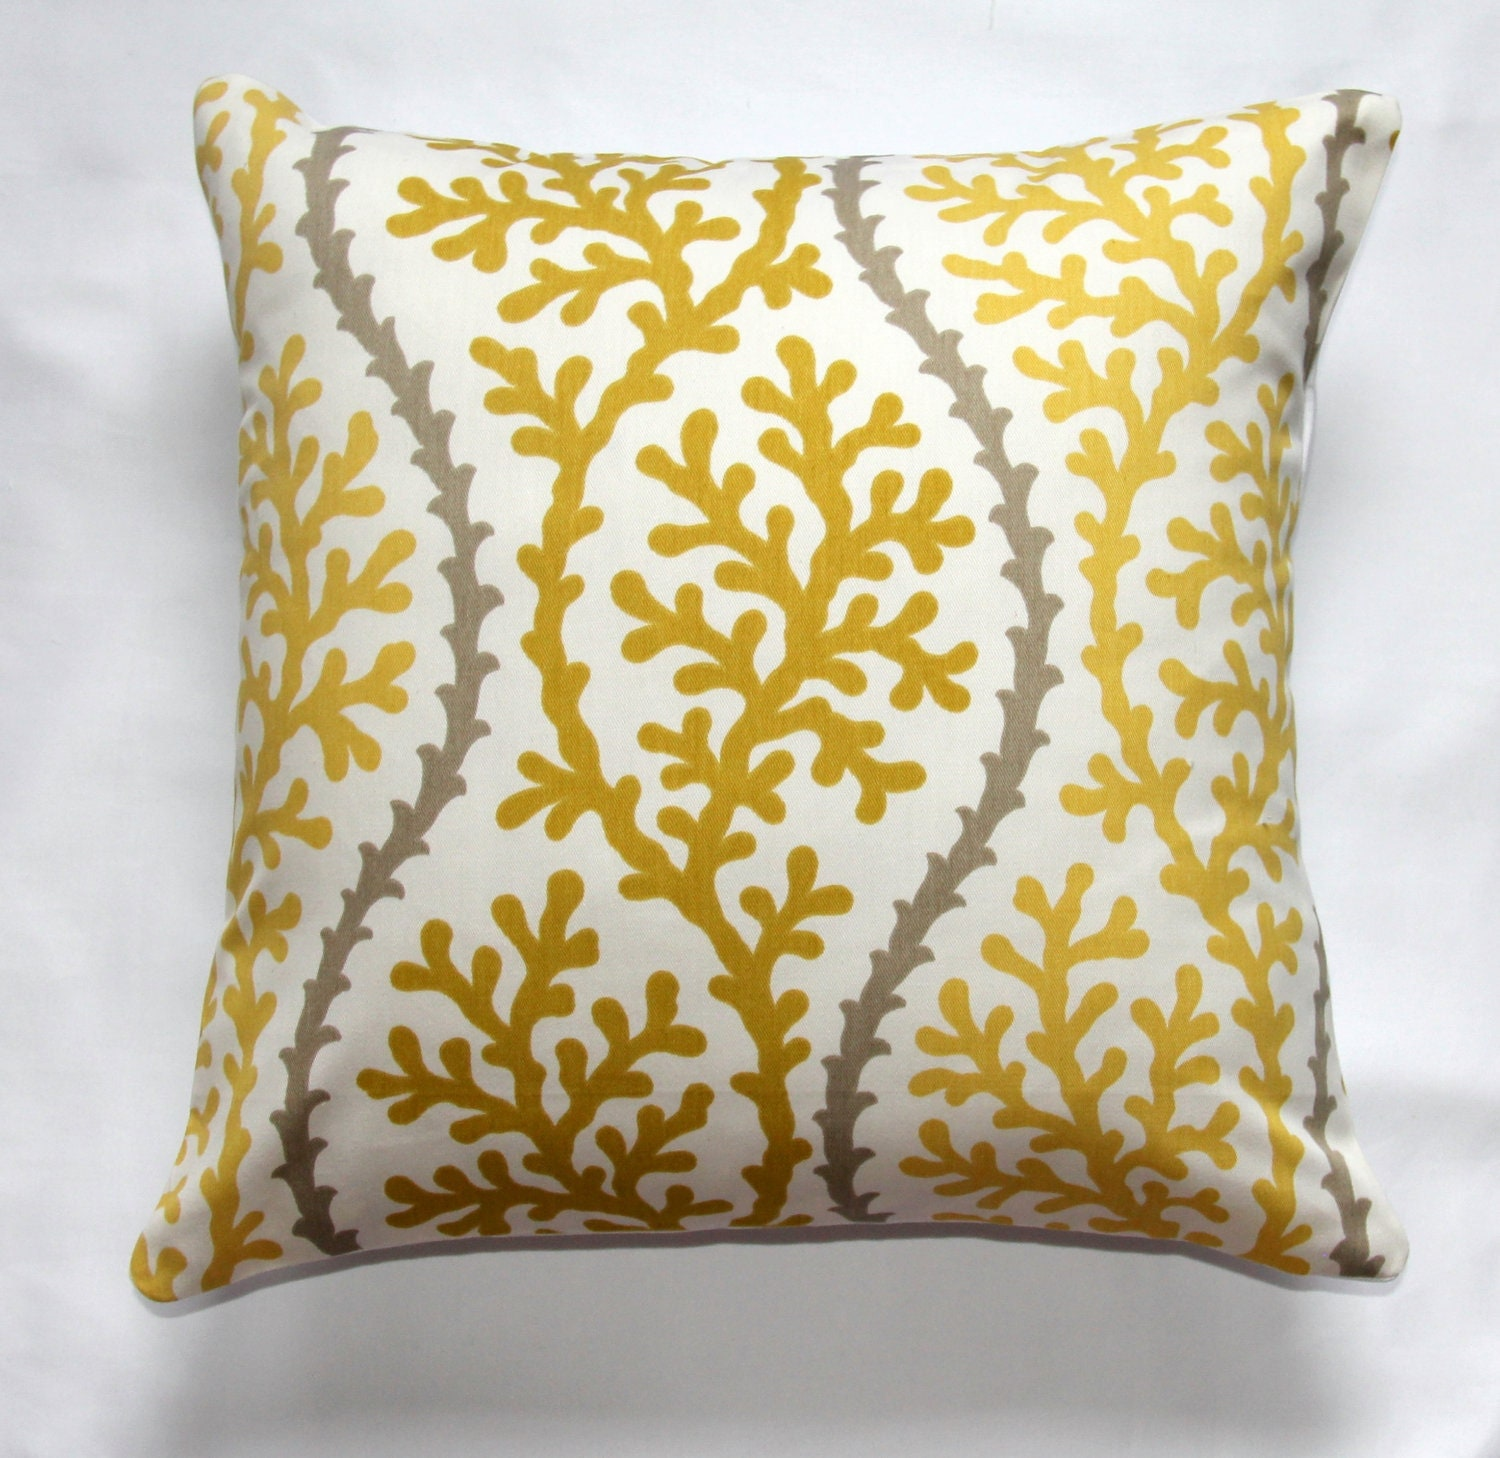 Images For Decorative Pillows : Pillows decorative pillow accent pillow throw pillow designer